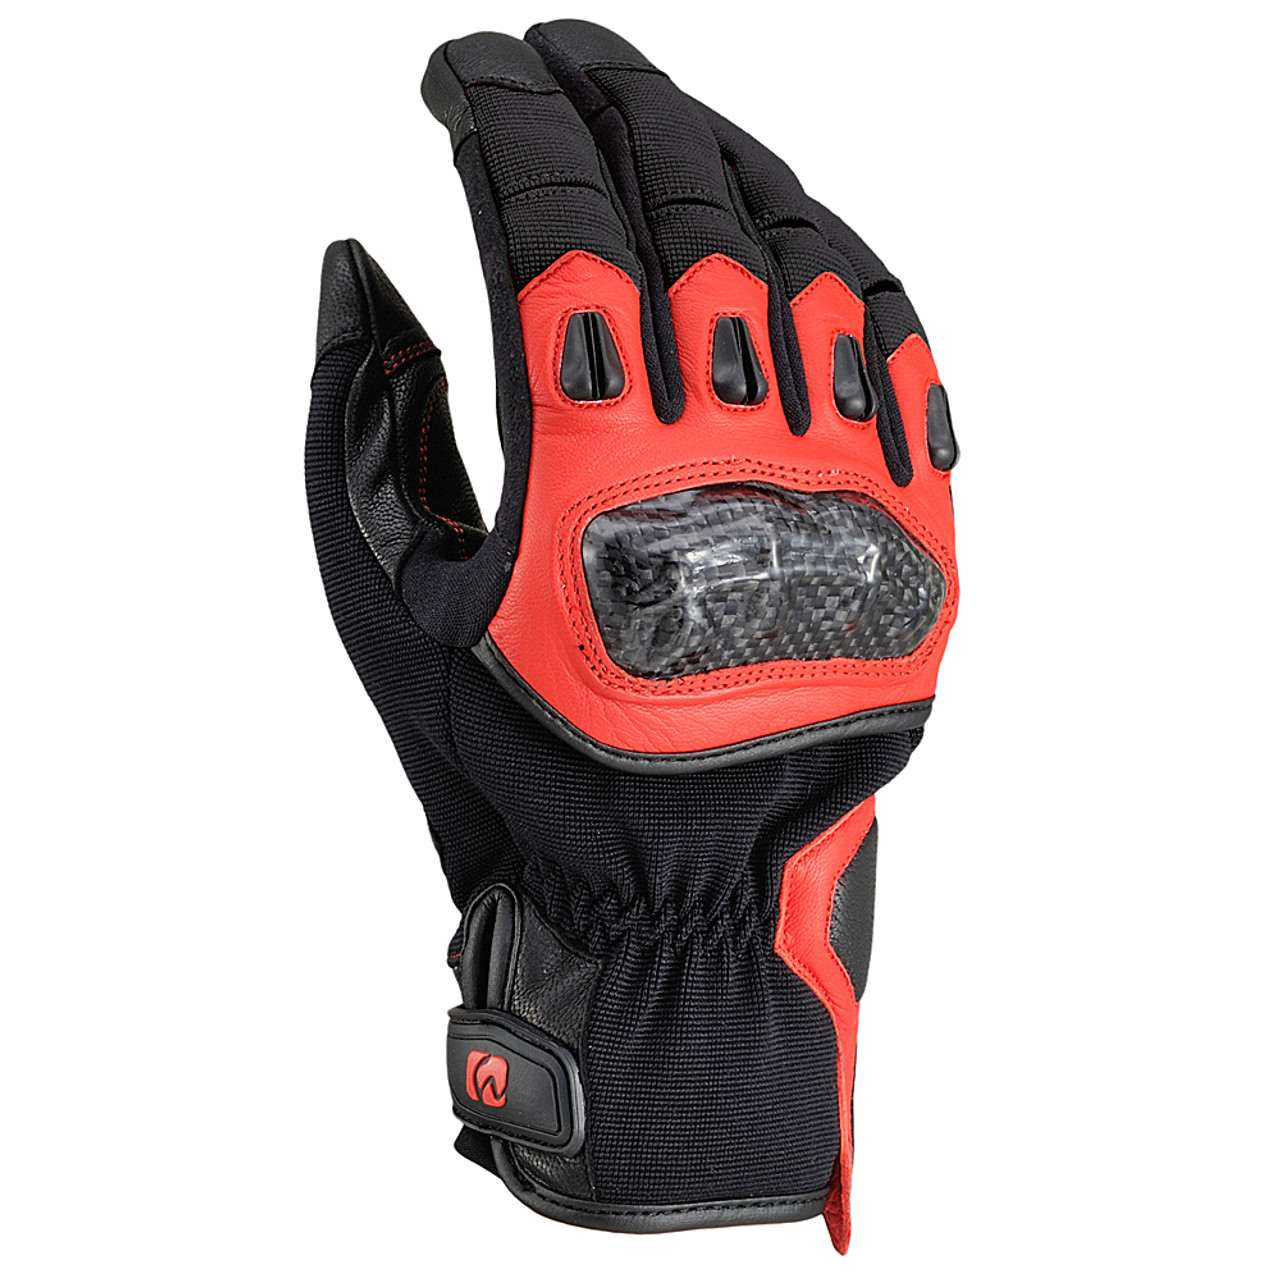 Henly Begins HBG-026 Carbon Protector Gloves All Season, RD M